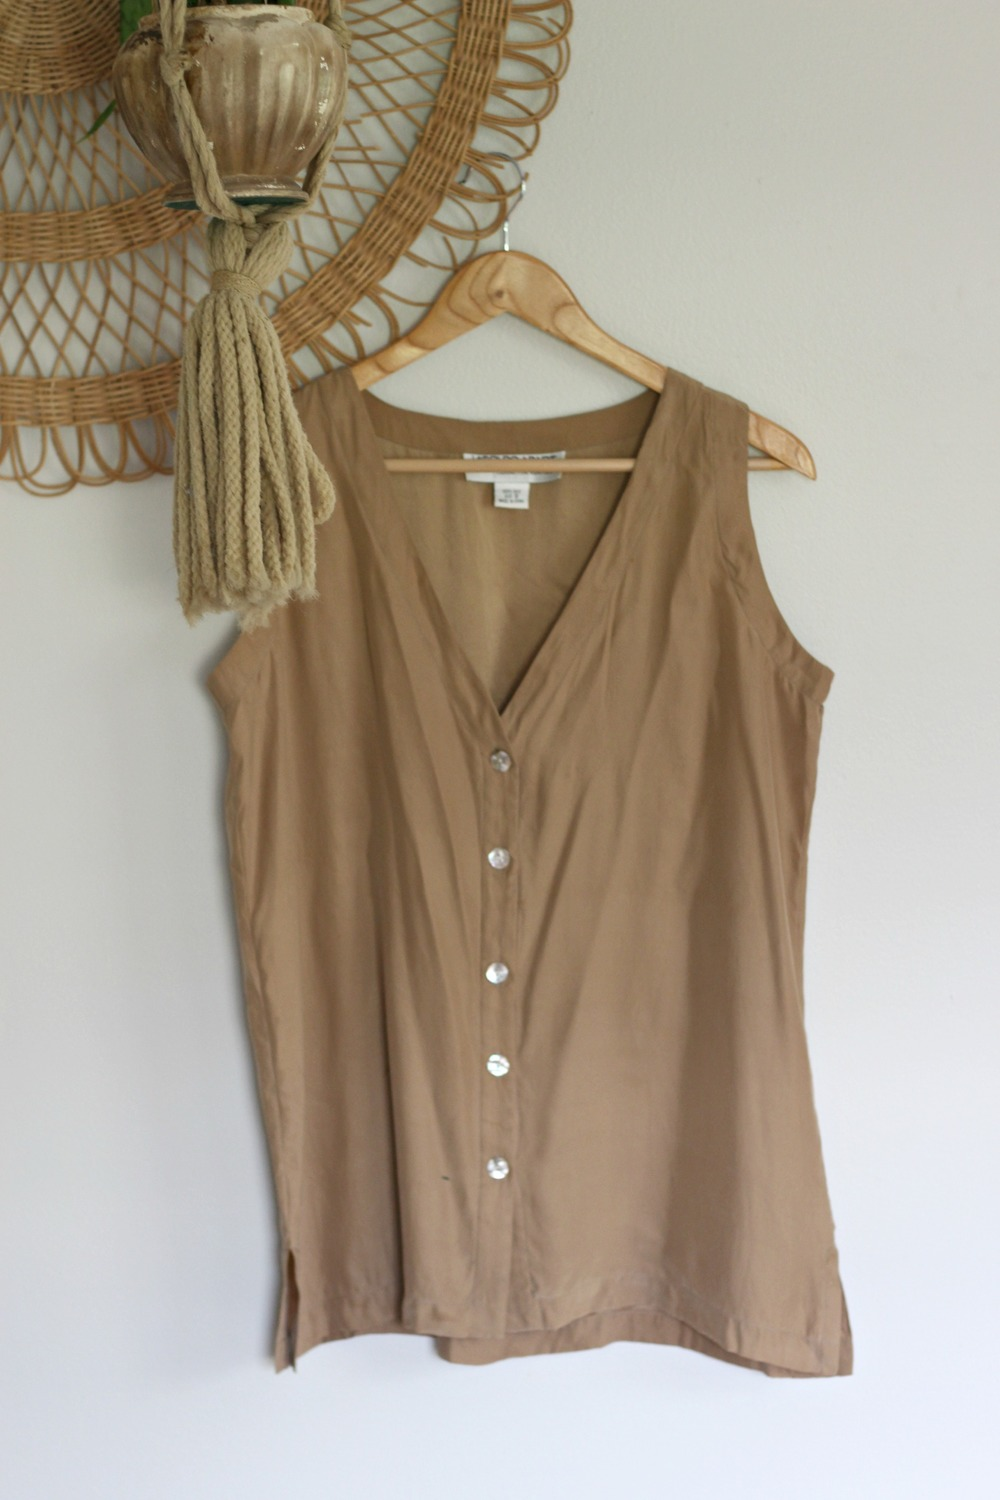 Silky Button-front Blouse $15